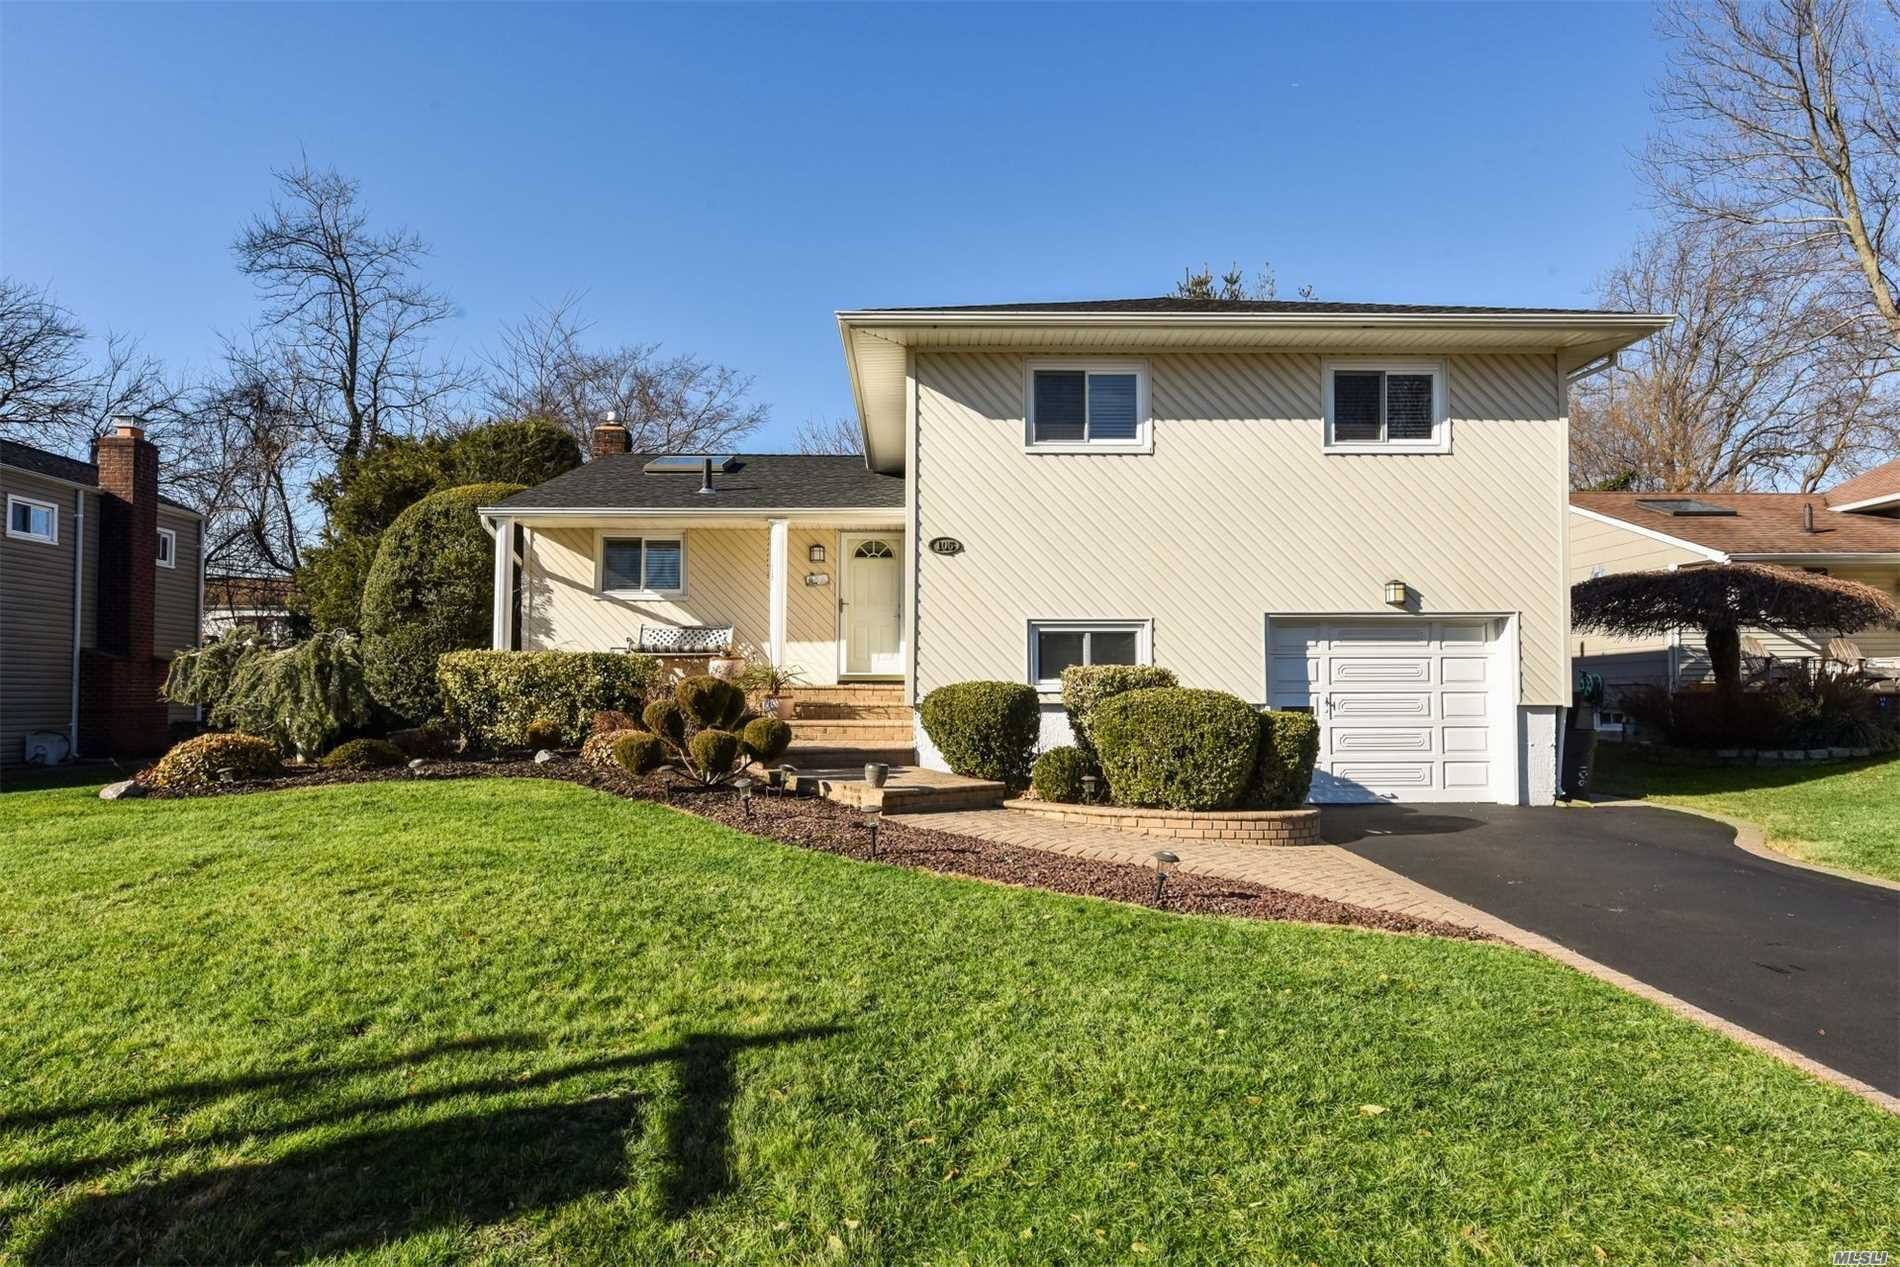 This Distinctive Updated Home In Manetto Hills Estates In Perfect Midblk Loc.On Lush Manicured Prof.Landscpd Property Features, 5Yr Sundrenched Stylish Eik, State Of The Art Jacuzzi Full Bth, 2 Yr Old Arch.Roof, 200 Amps, Hardwd Floors, New Gas Heating, Updt Master Bth, Speaker System.Parkway Elem, Mattlin Middle School.Too Much To Mention.Bring Your Fussiest Buyer.A Must See!!